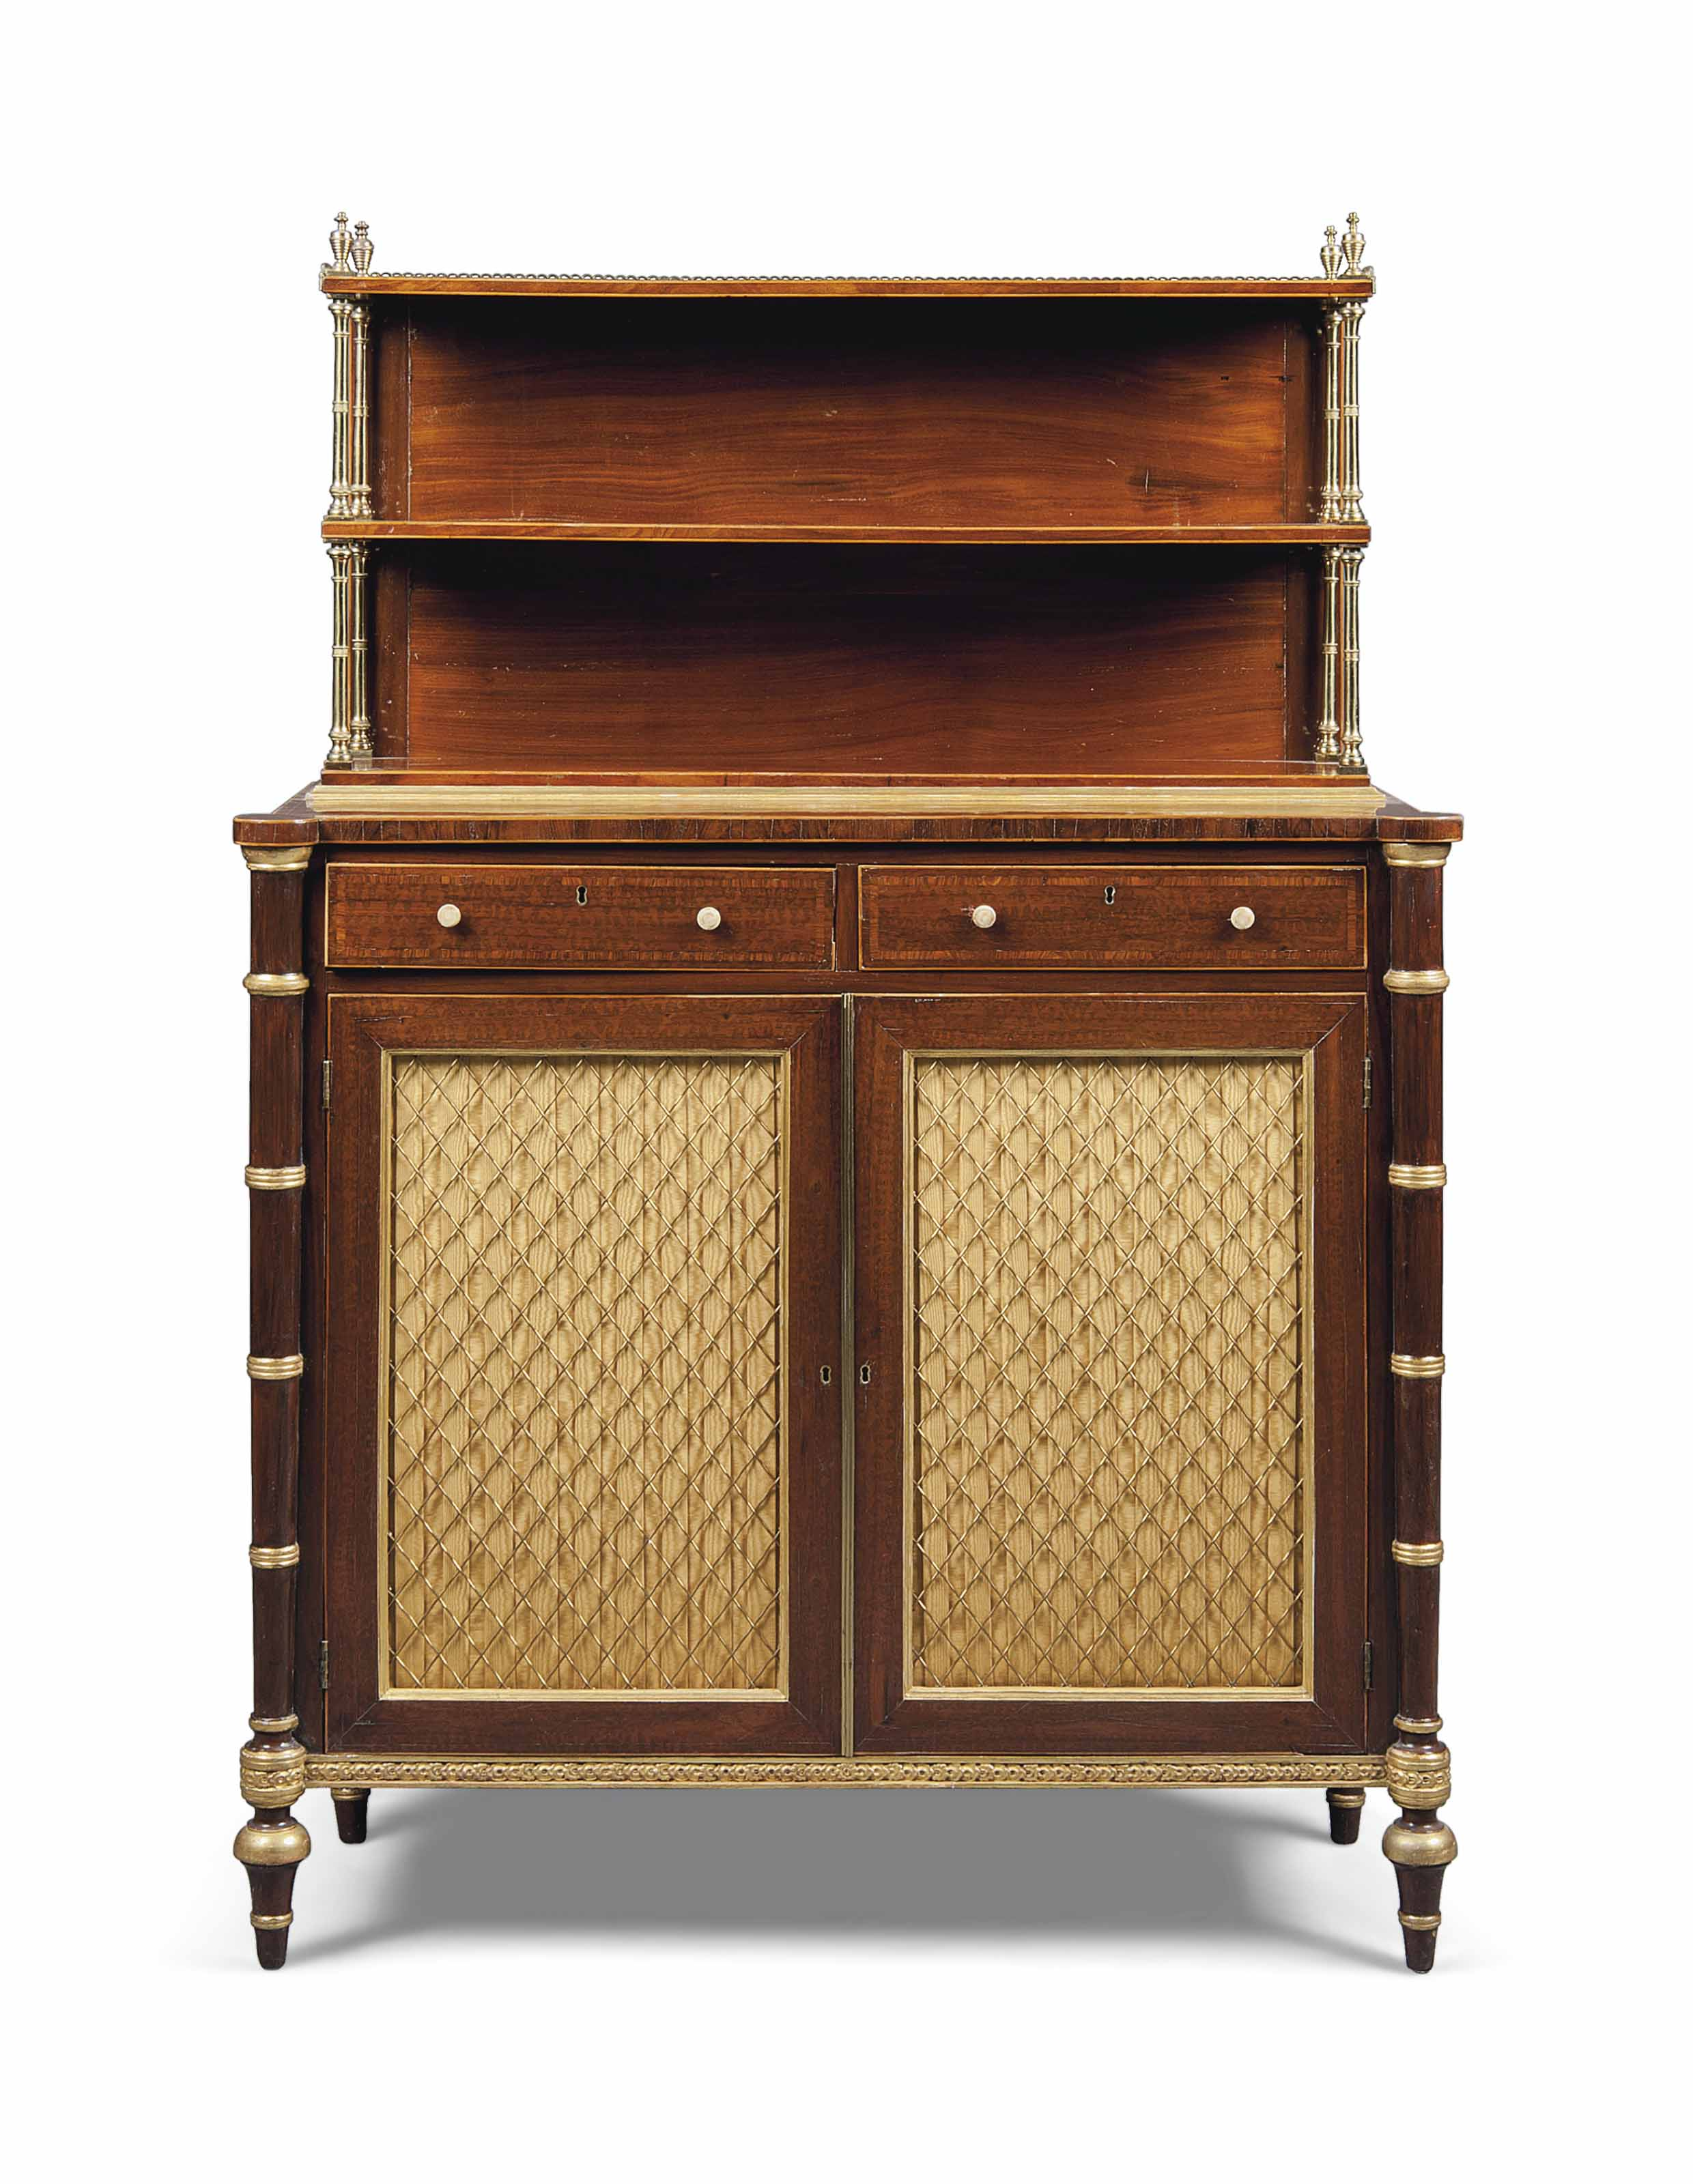 A REGENCY ROSEWOOD CROSSBANDED, SNAKEWOOD, GRAINED ROSEWOOD AND PARCEL-GILT CHIFFONIER